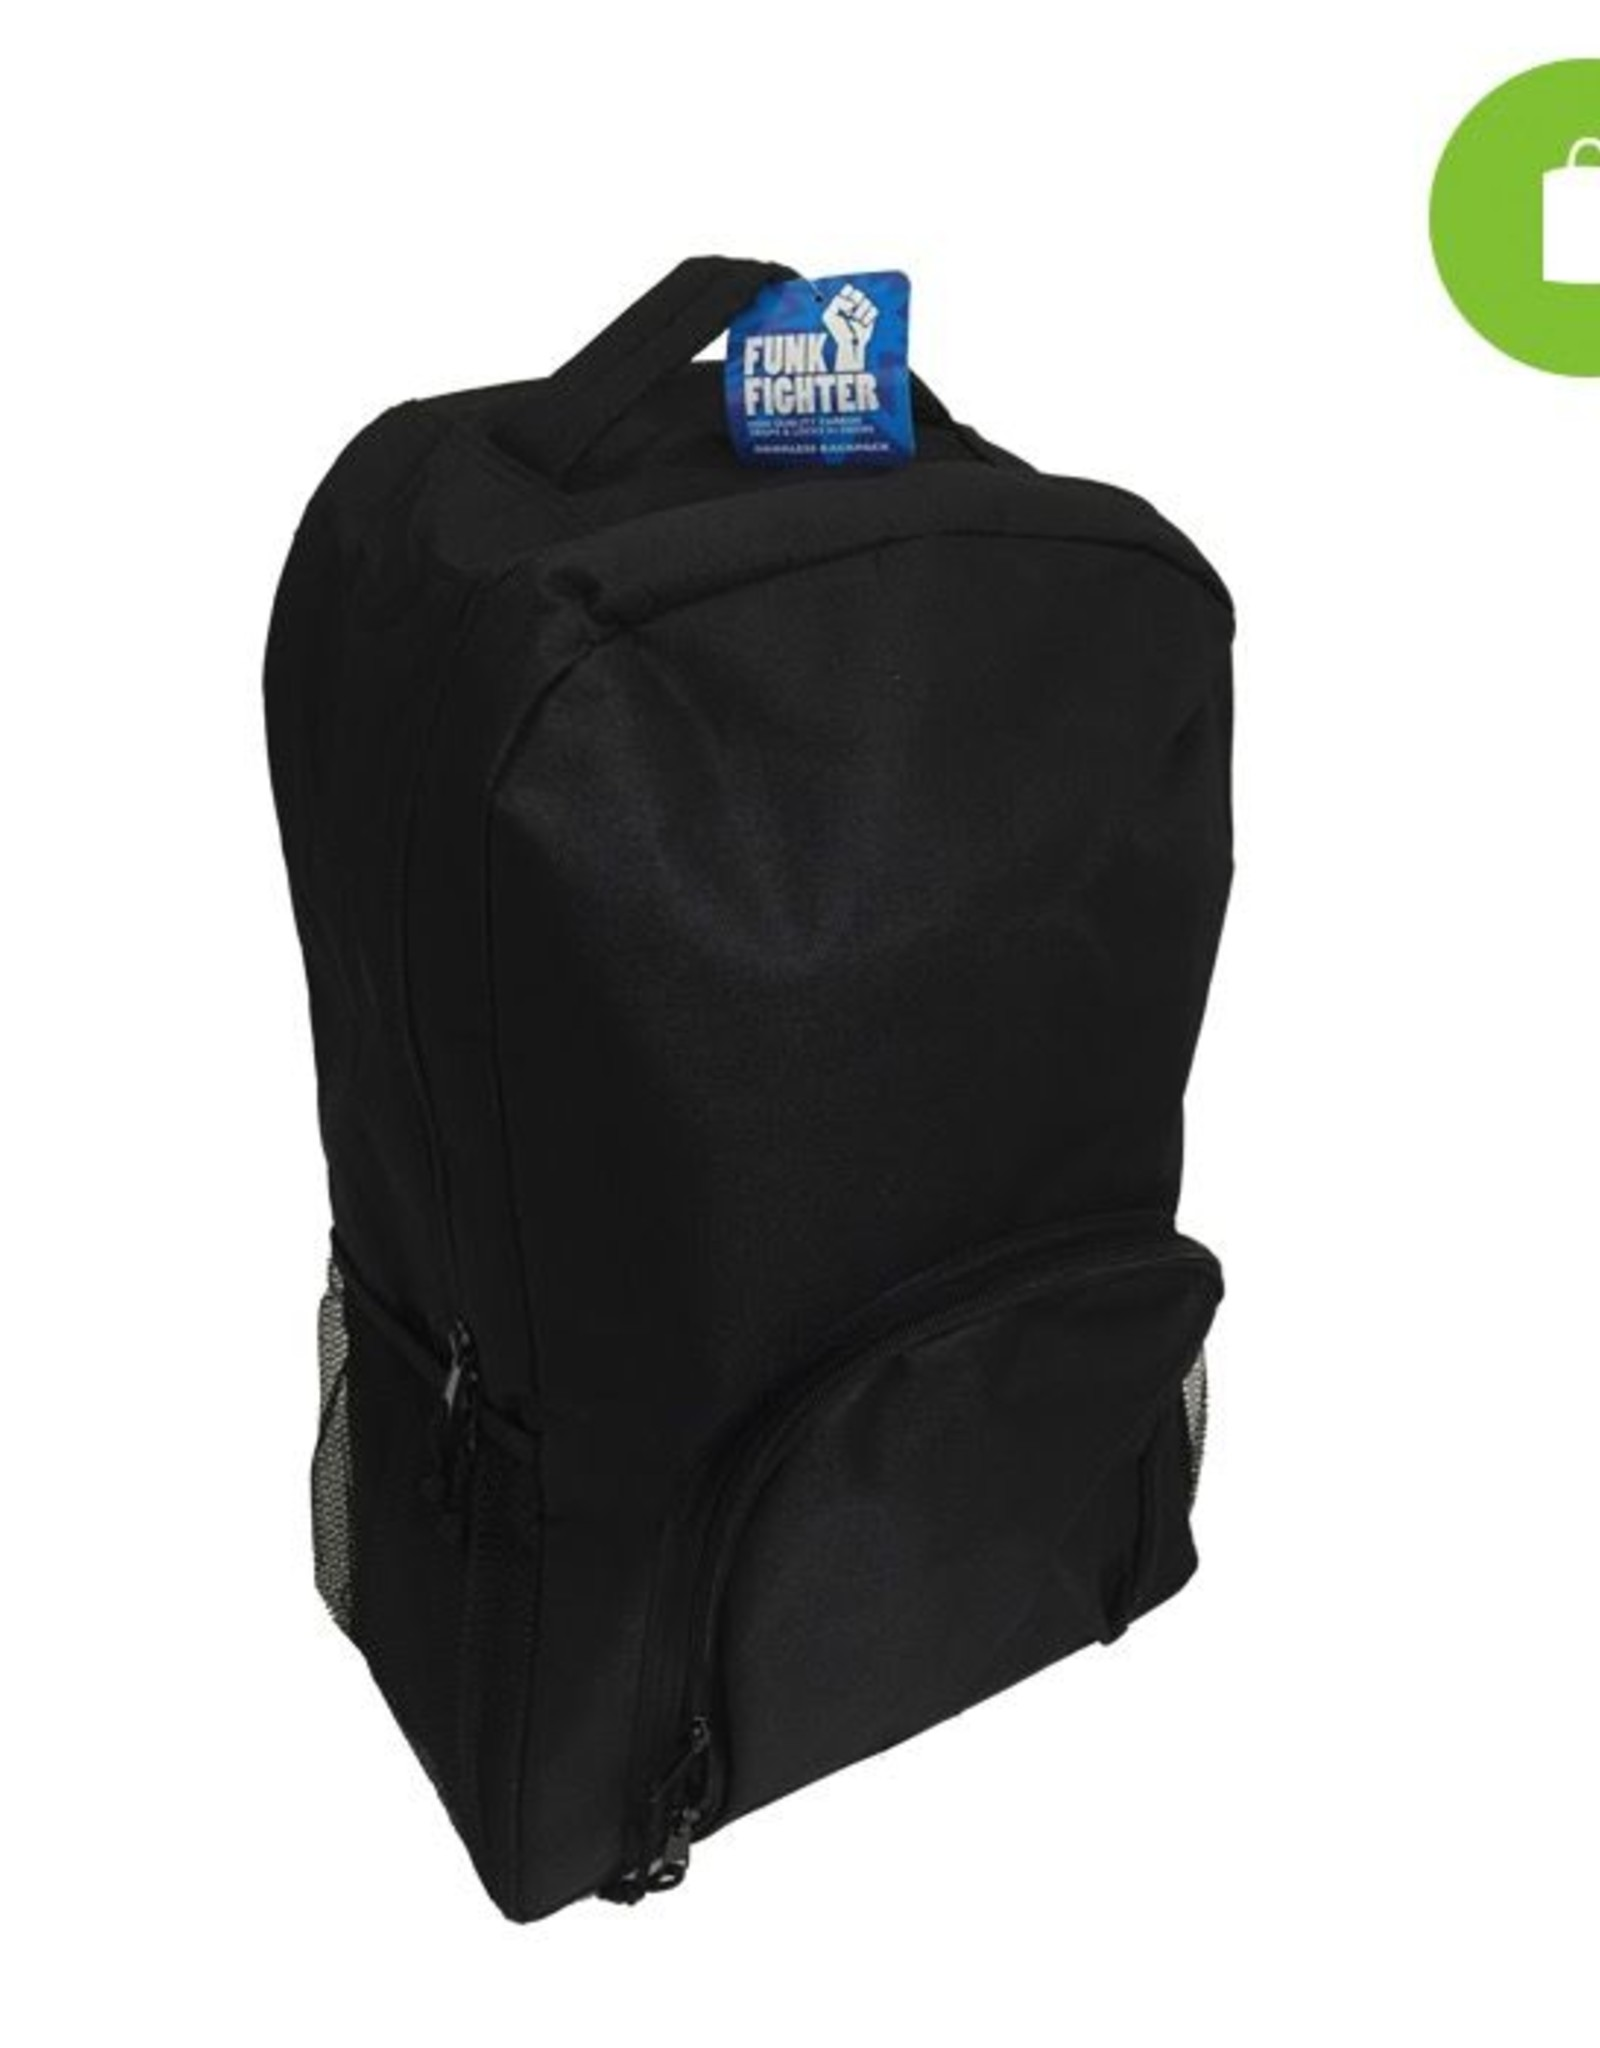 DL WHOLESALE Funk Fighter Backpack